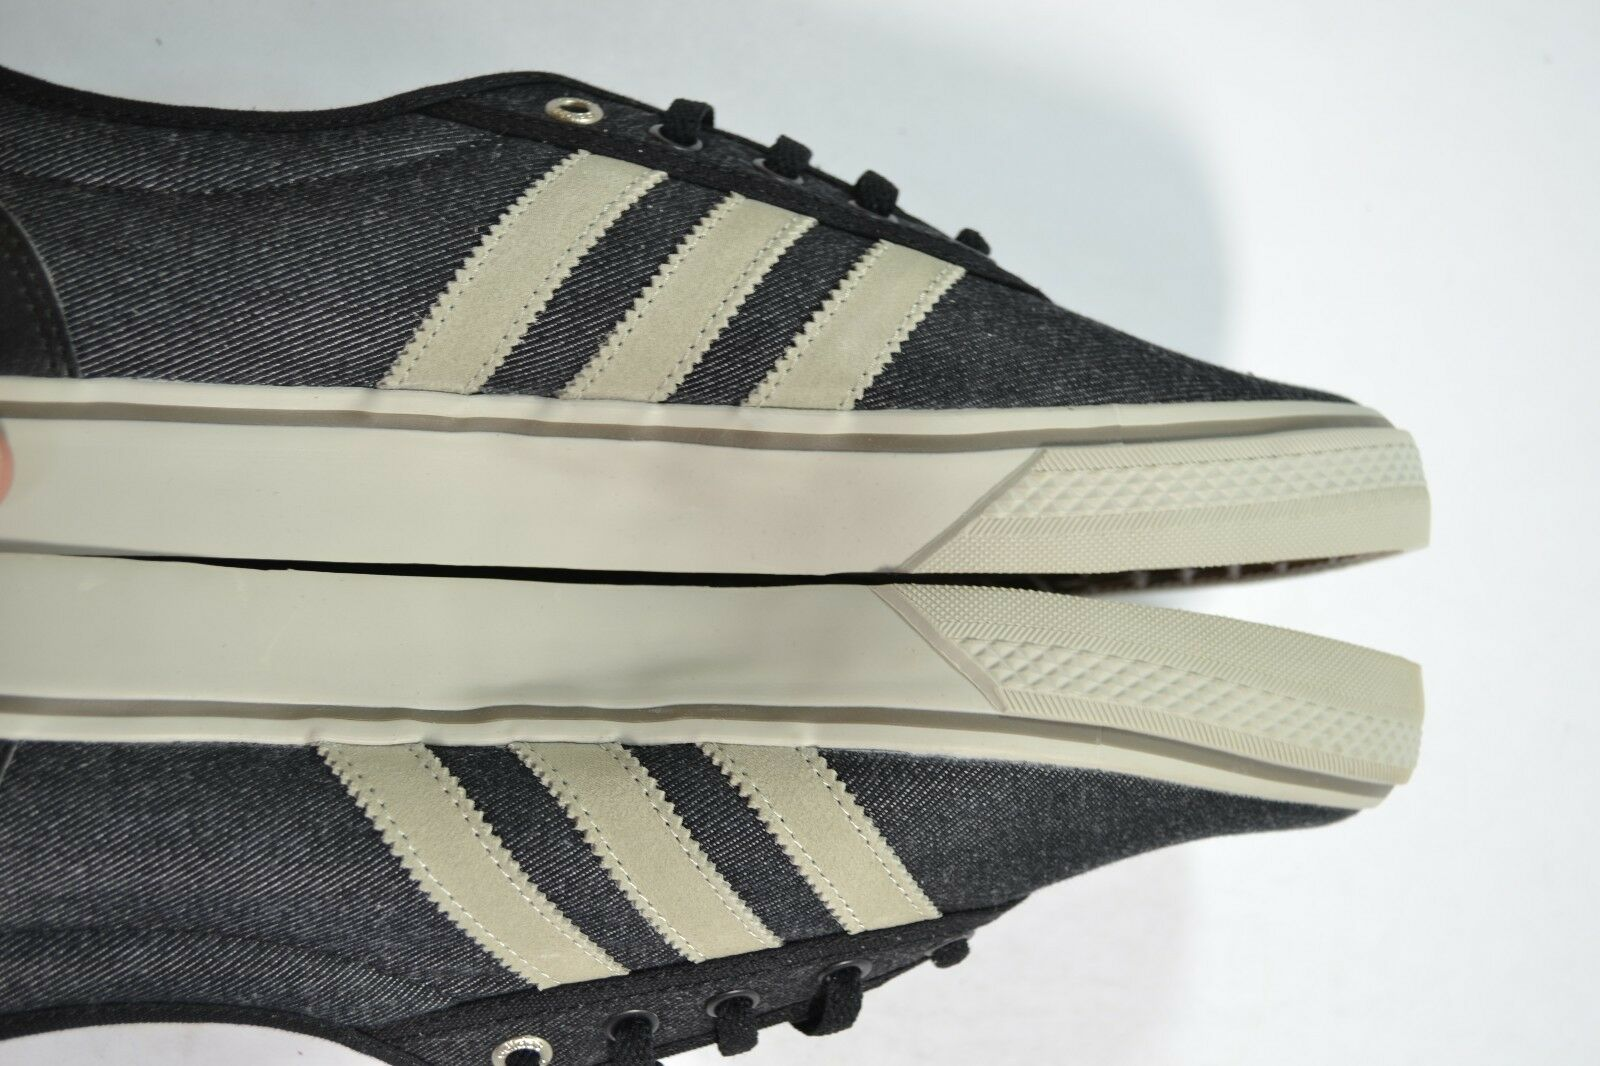 Adidas ADI EASE Black 1 Sesame Titan (246) Grey Skateboarding (D) (246) Titan Men's Shoes a8e8f6